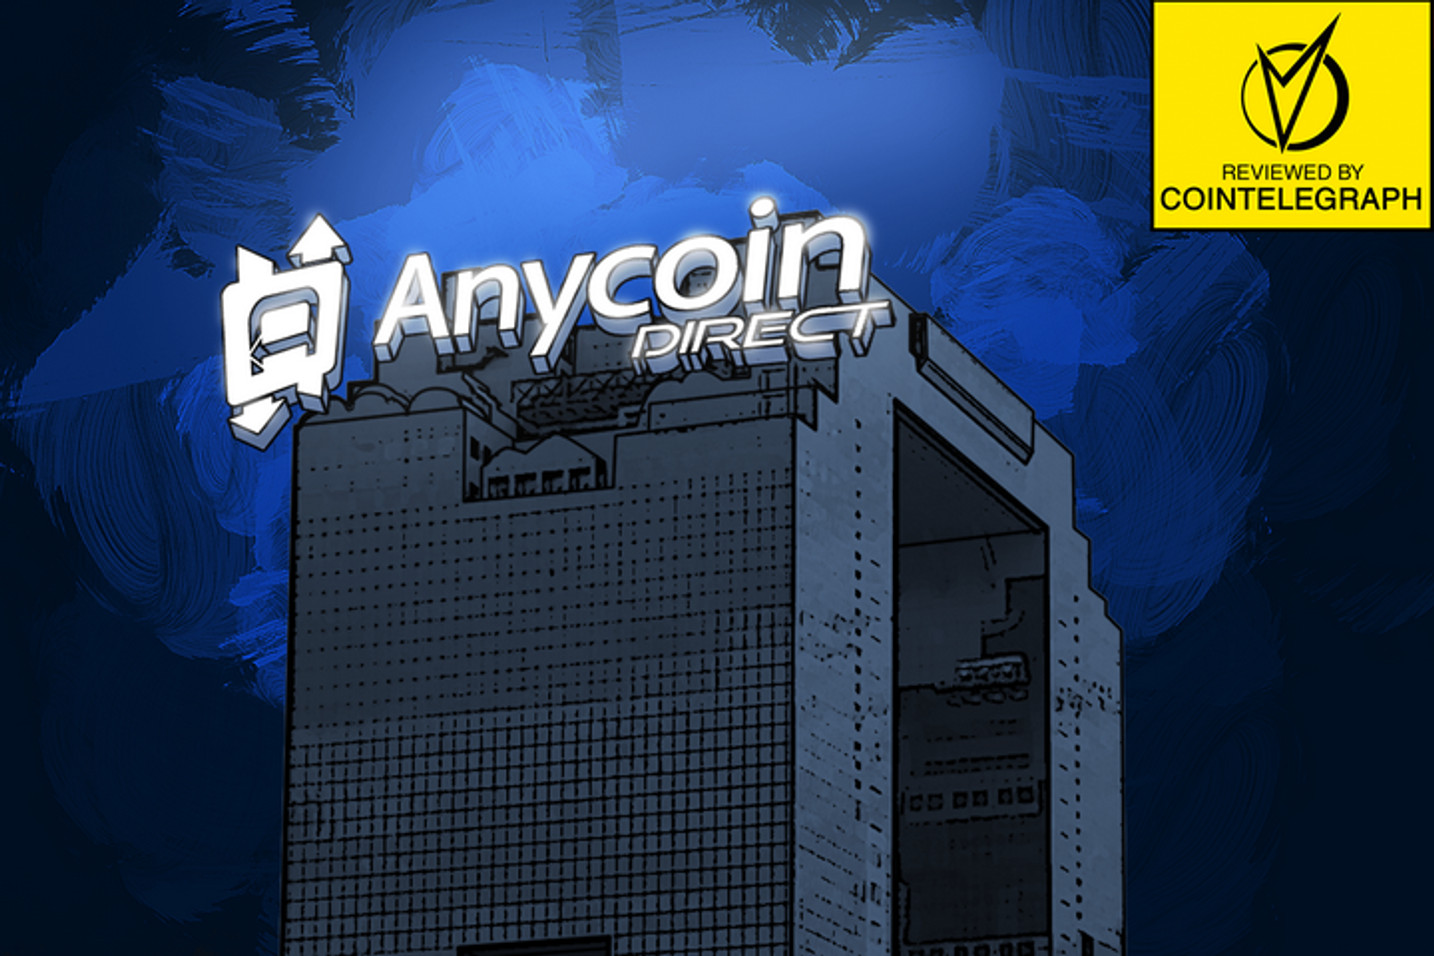 Anycoin Direct